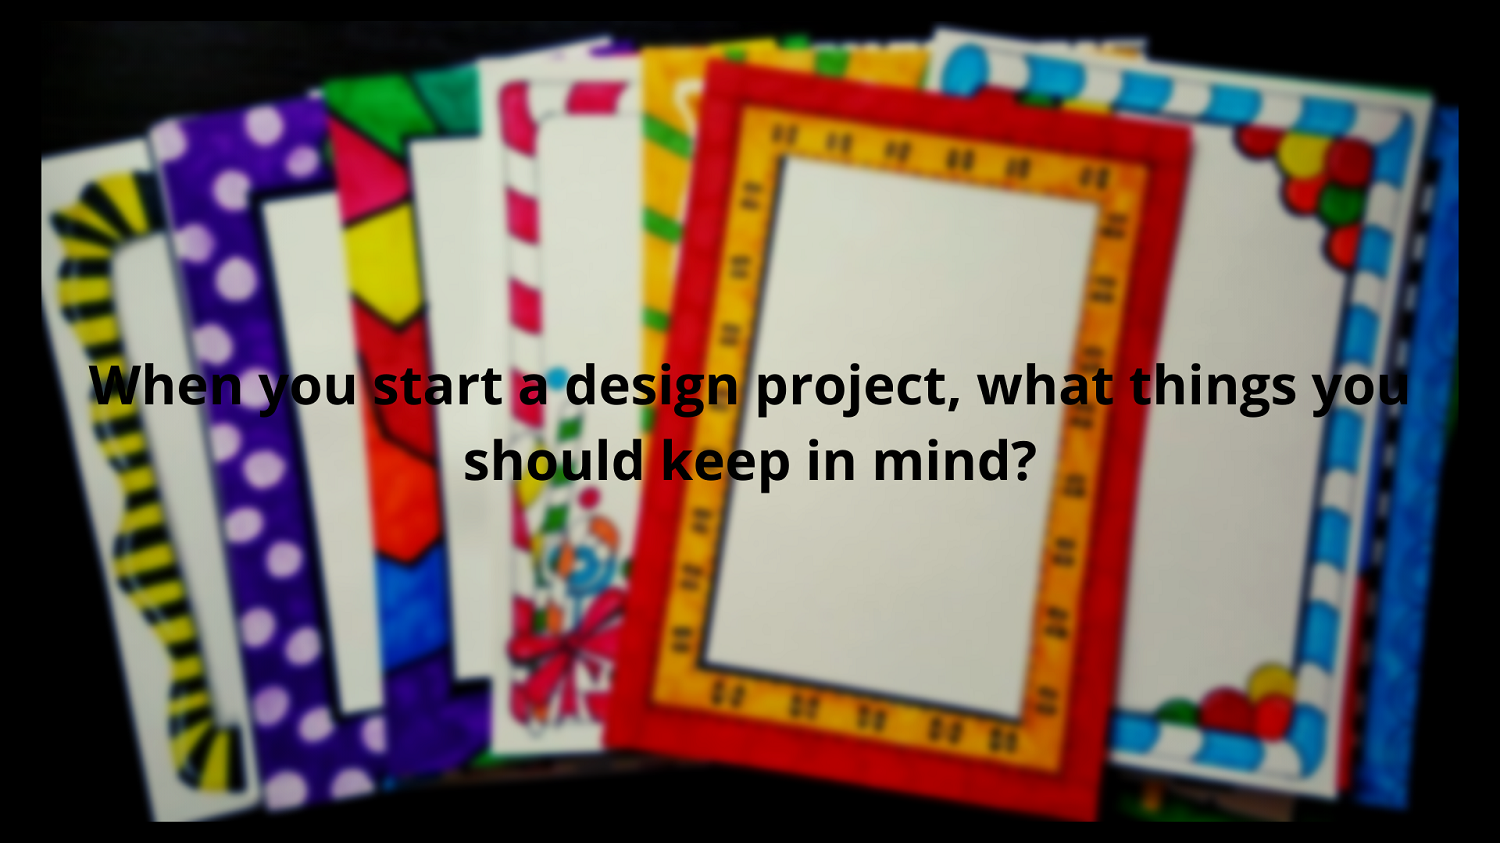 Tips for Starting a Design Project